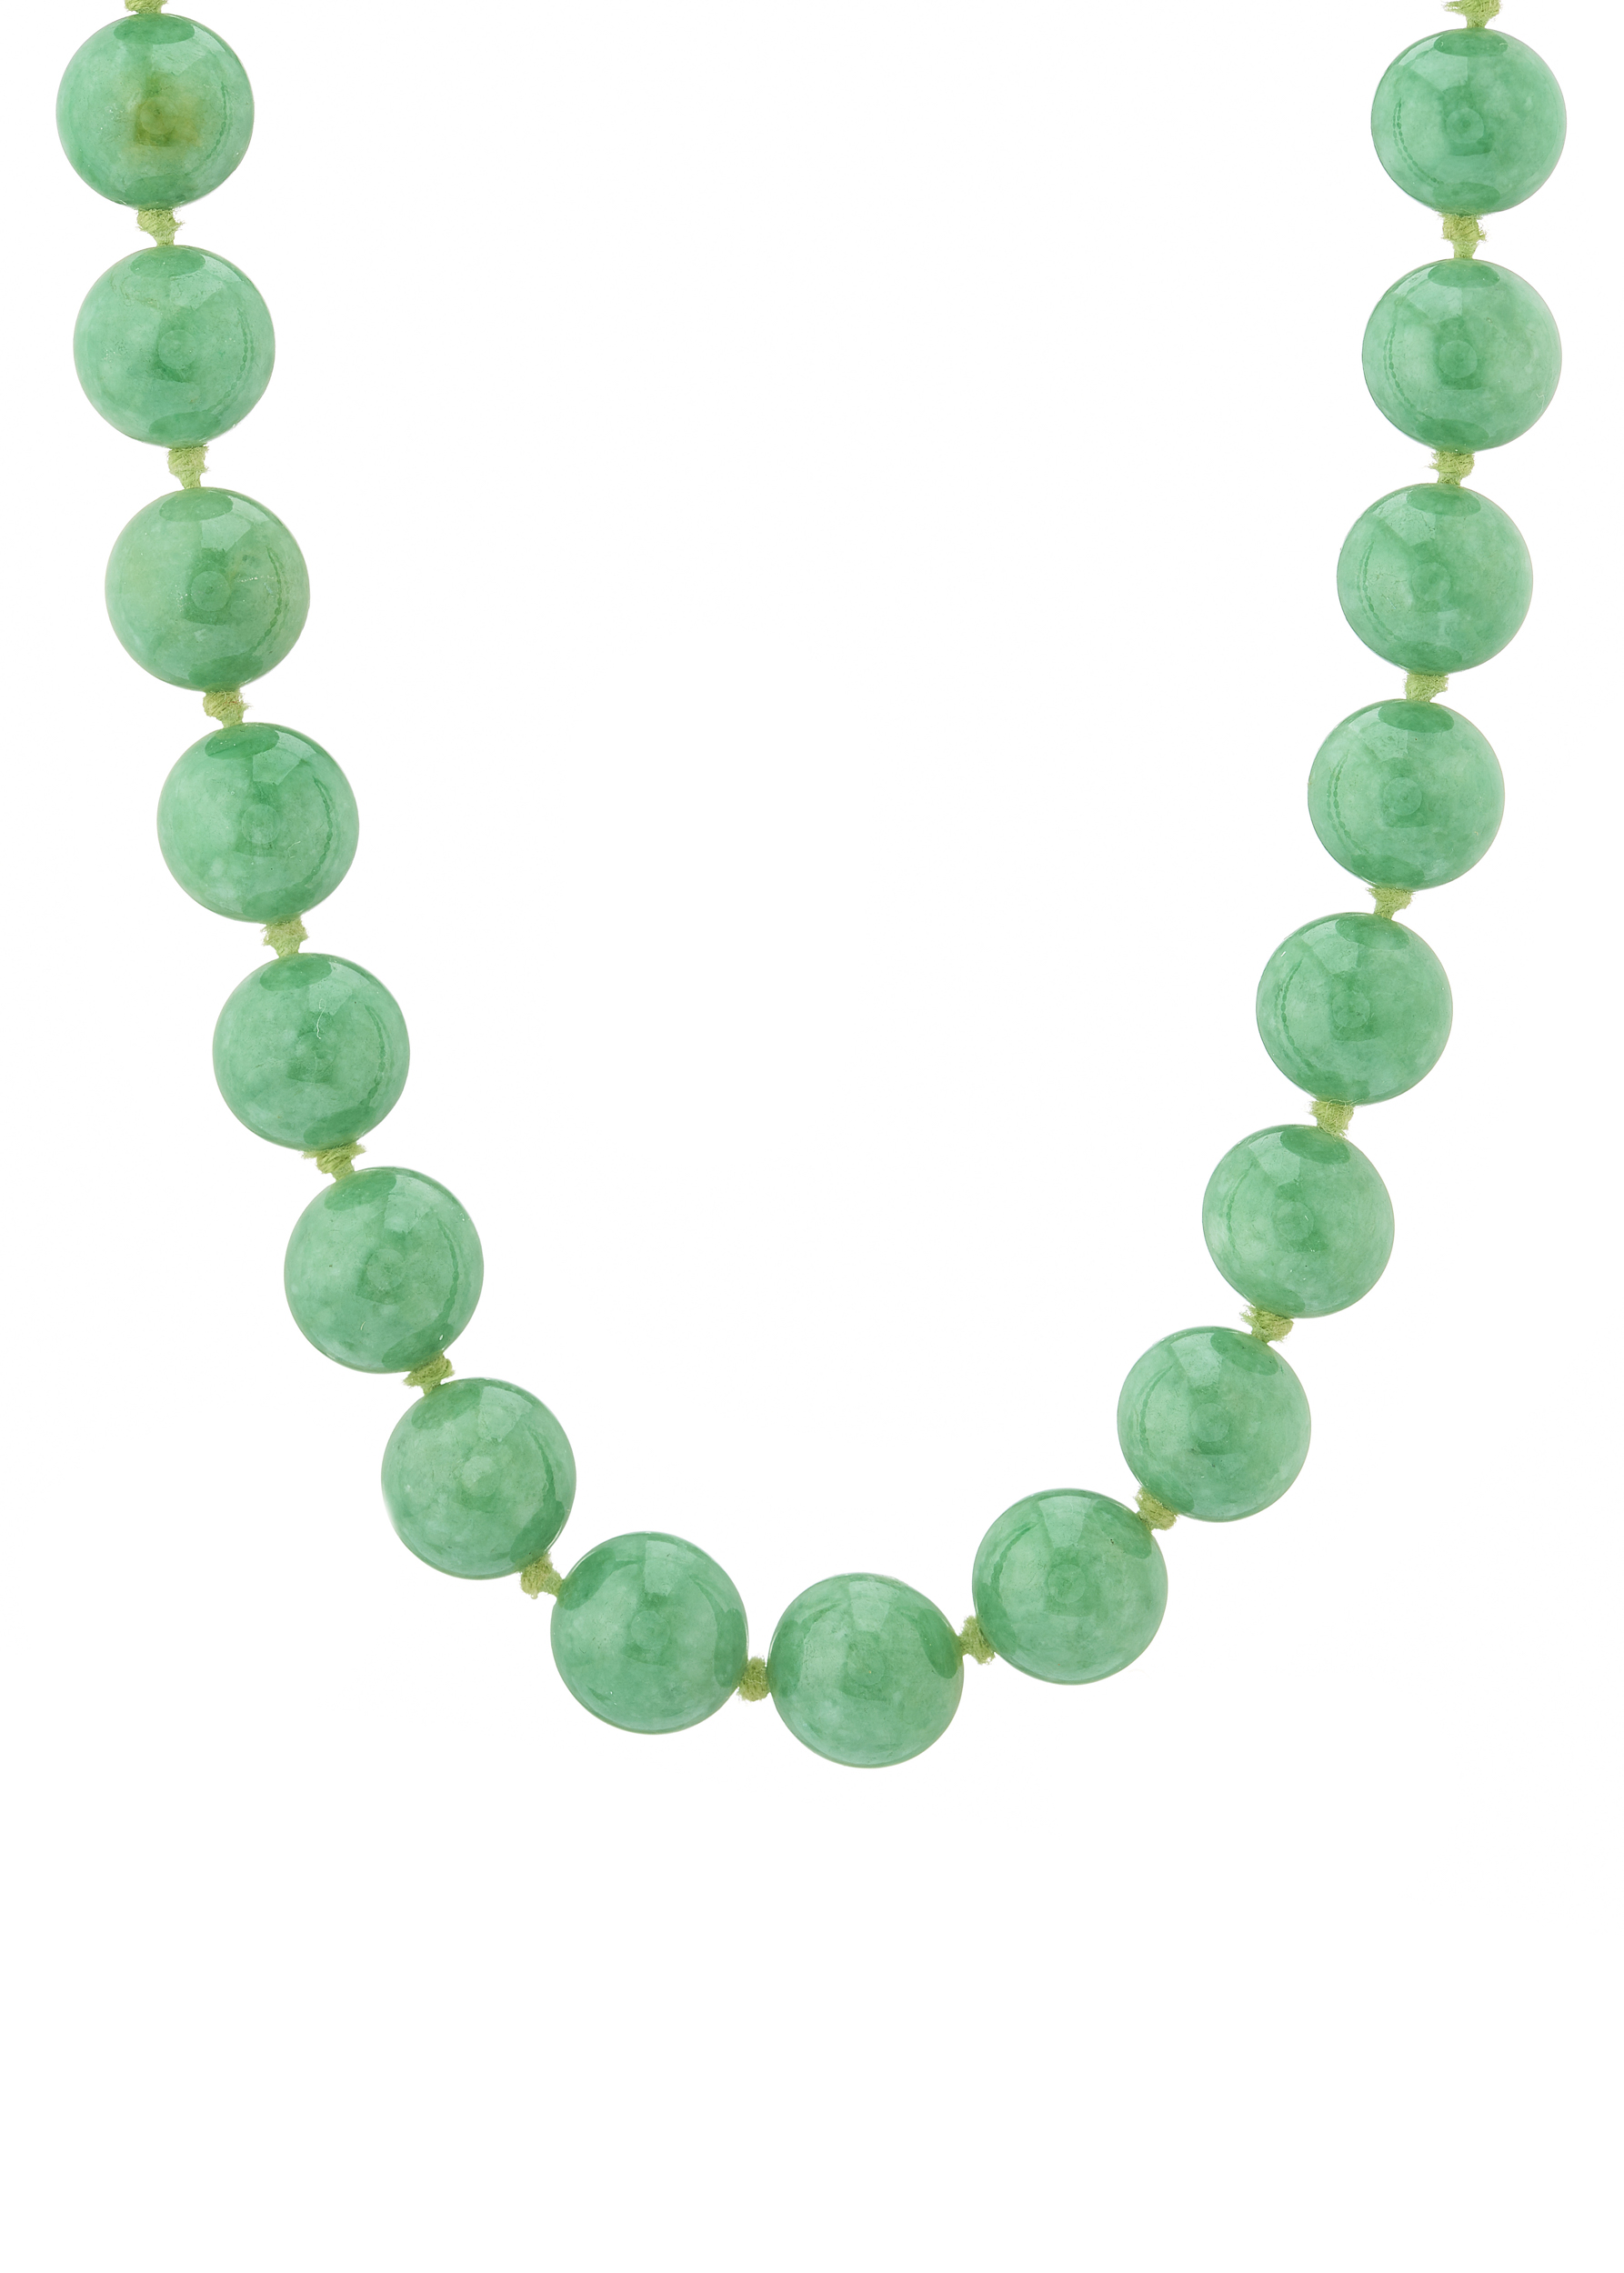 A natural jadeite jade bead necklace, with report